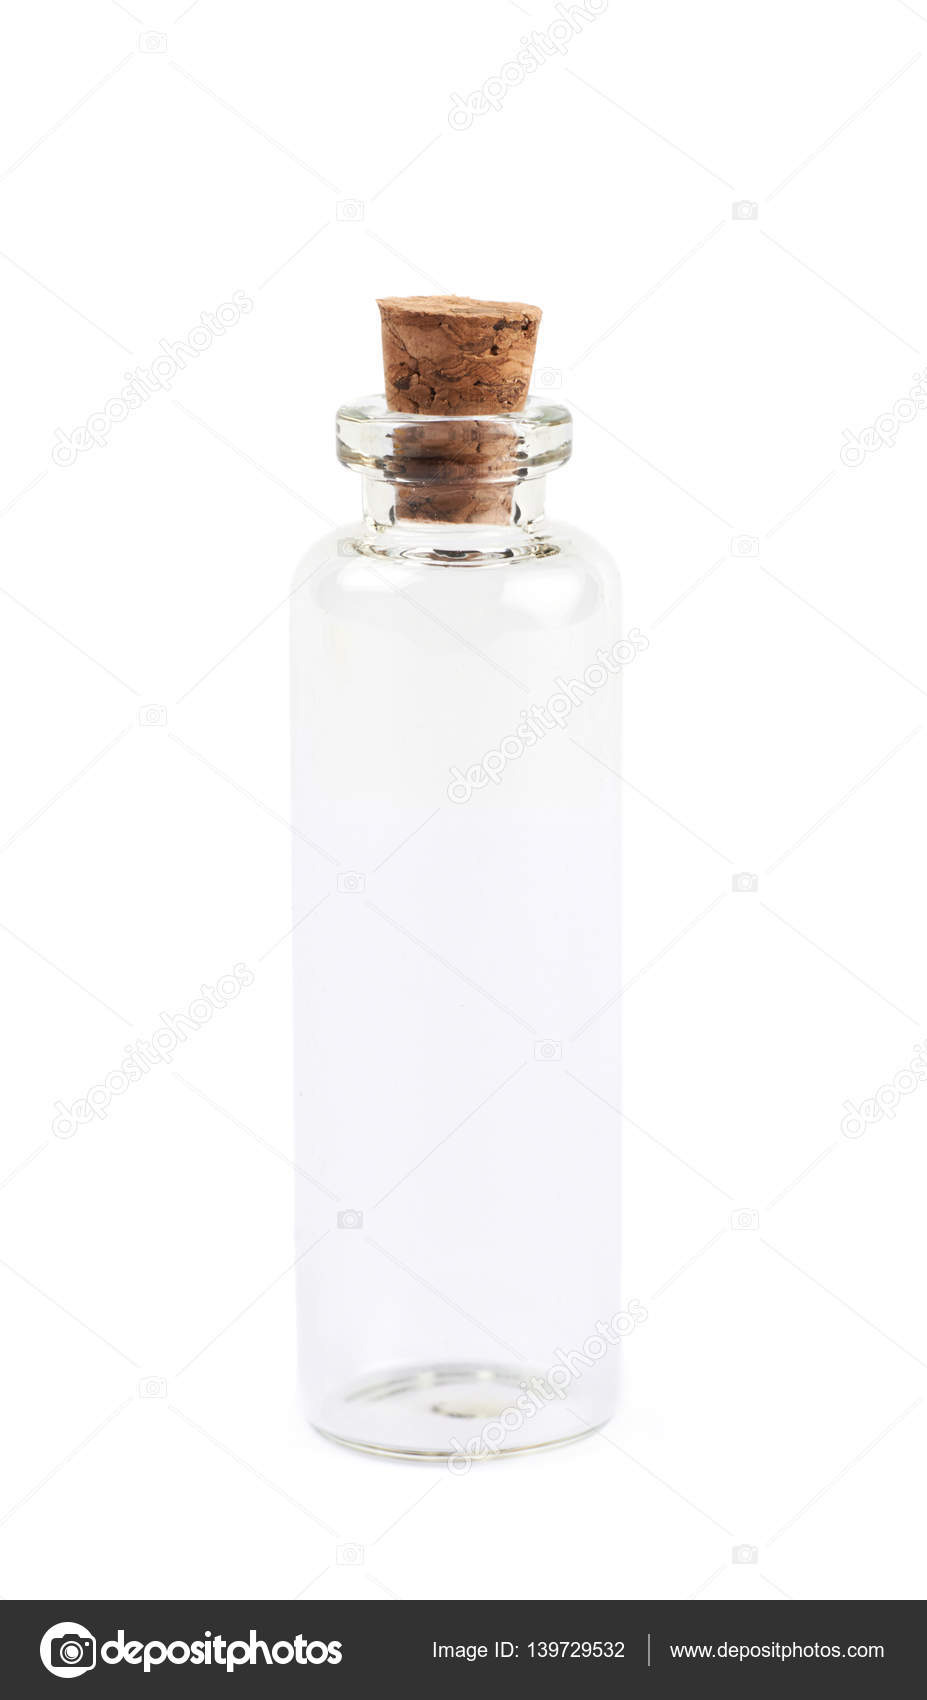 depositphotos stock photo tiny glass bottle with a